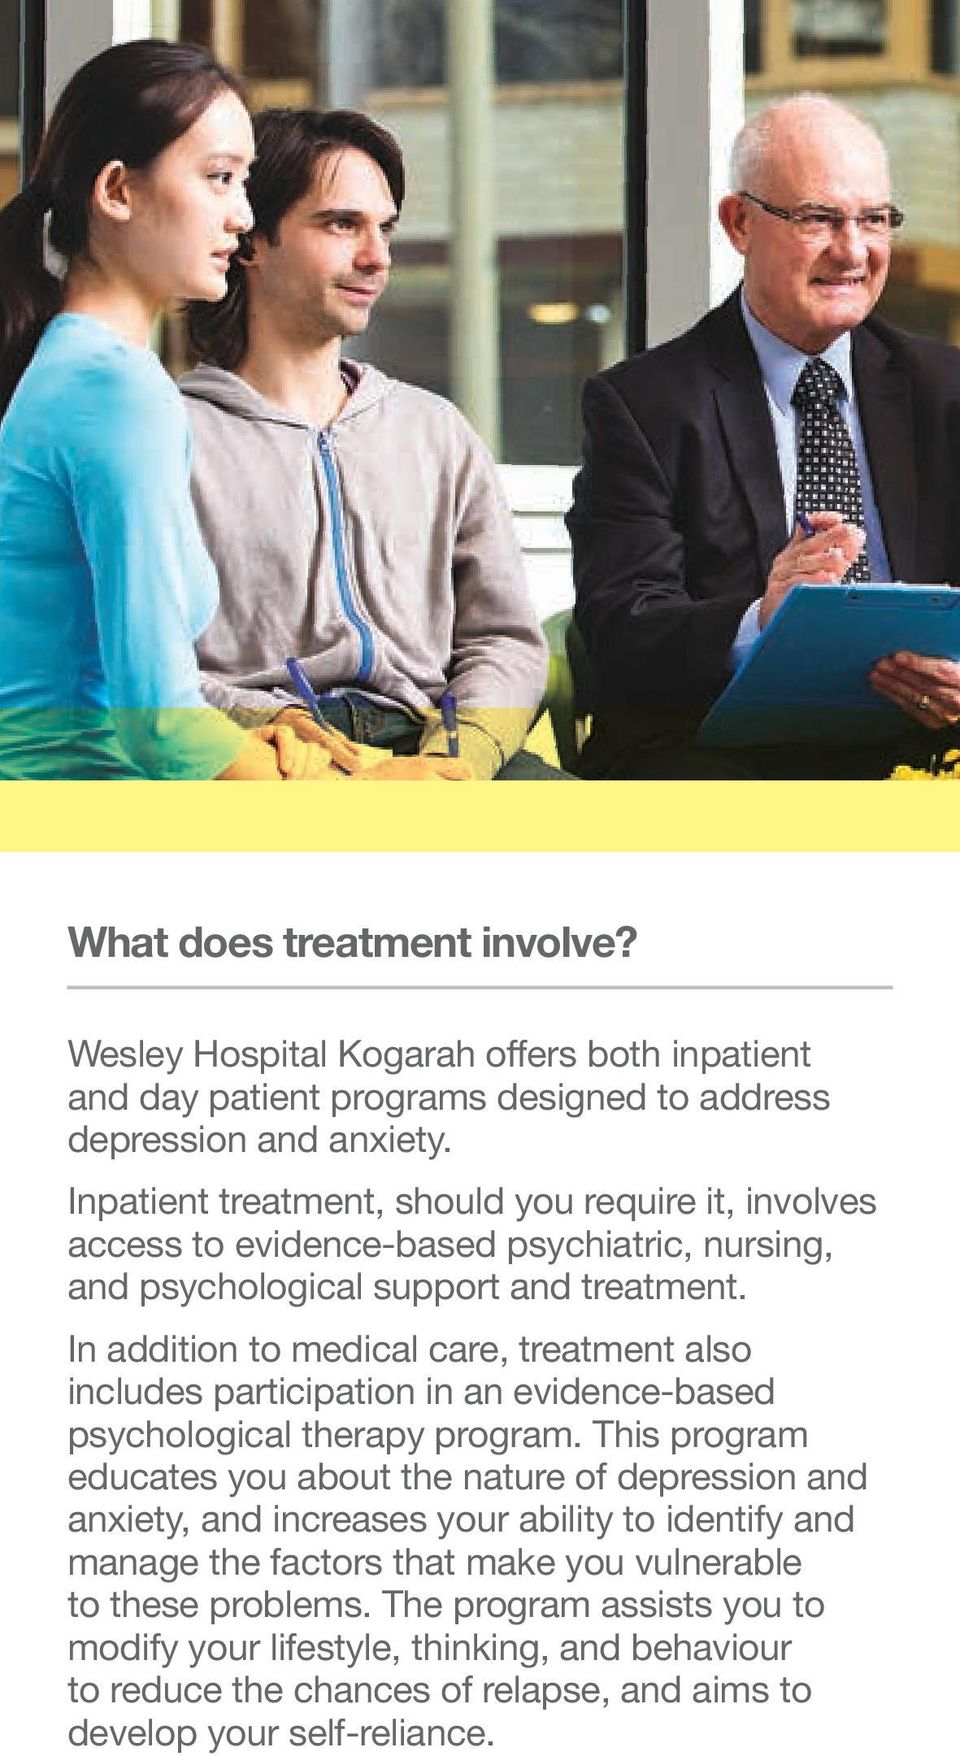 In addition to medical care, treatment also includes participation in an evidence-based psychological therapy program.